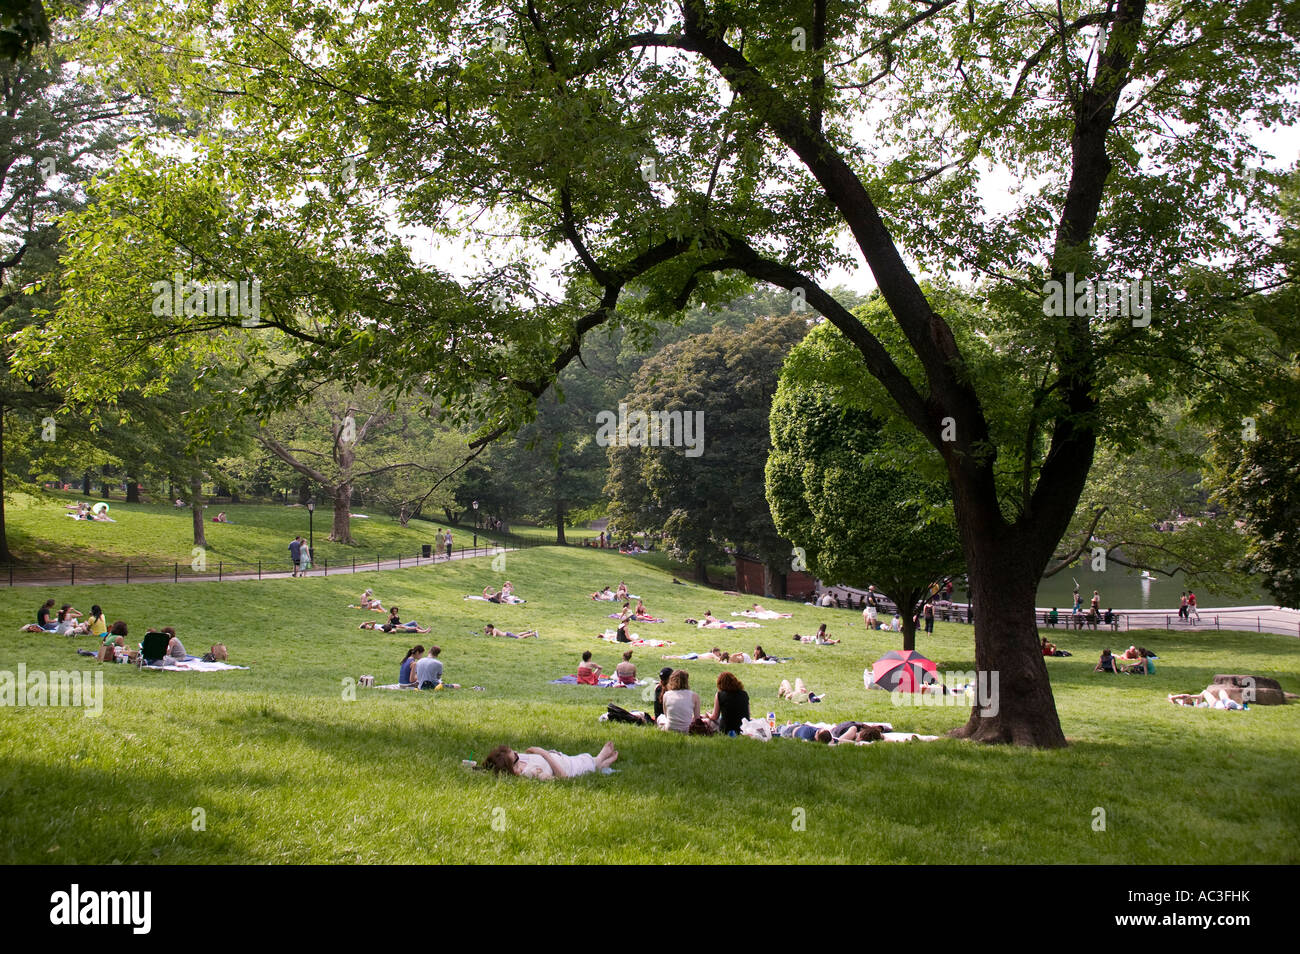 People Enjoying The Nice Weather In Central Park New York City Stock Photo Alamy